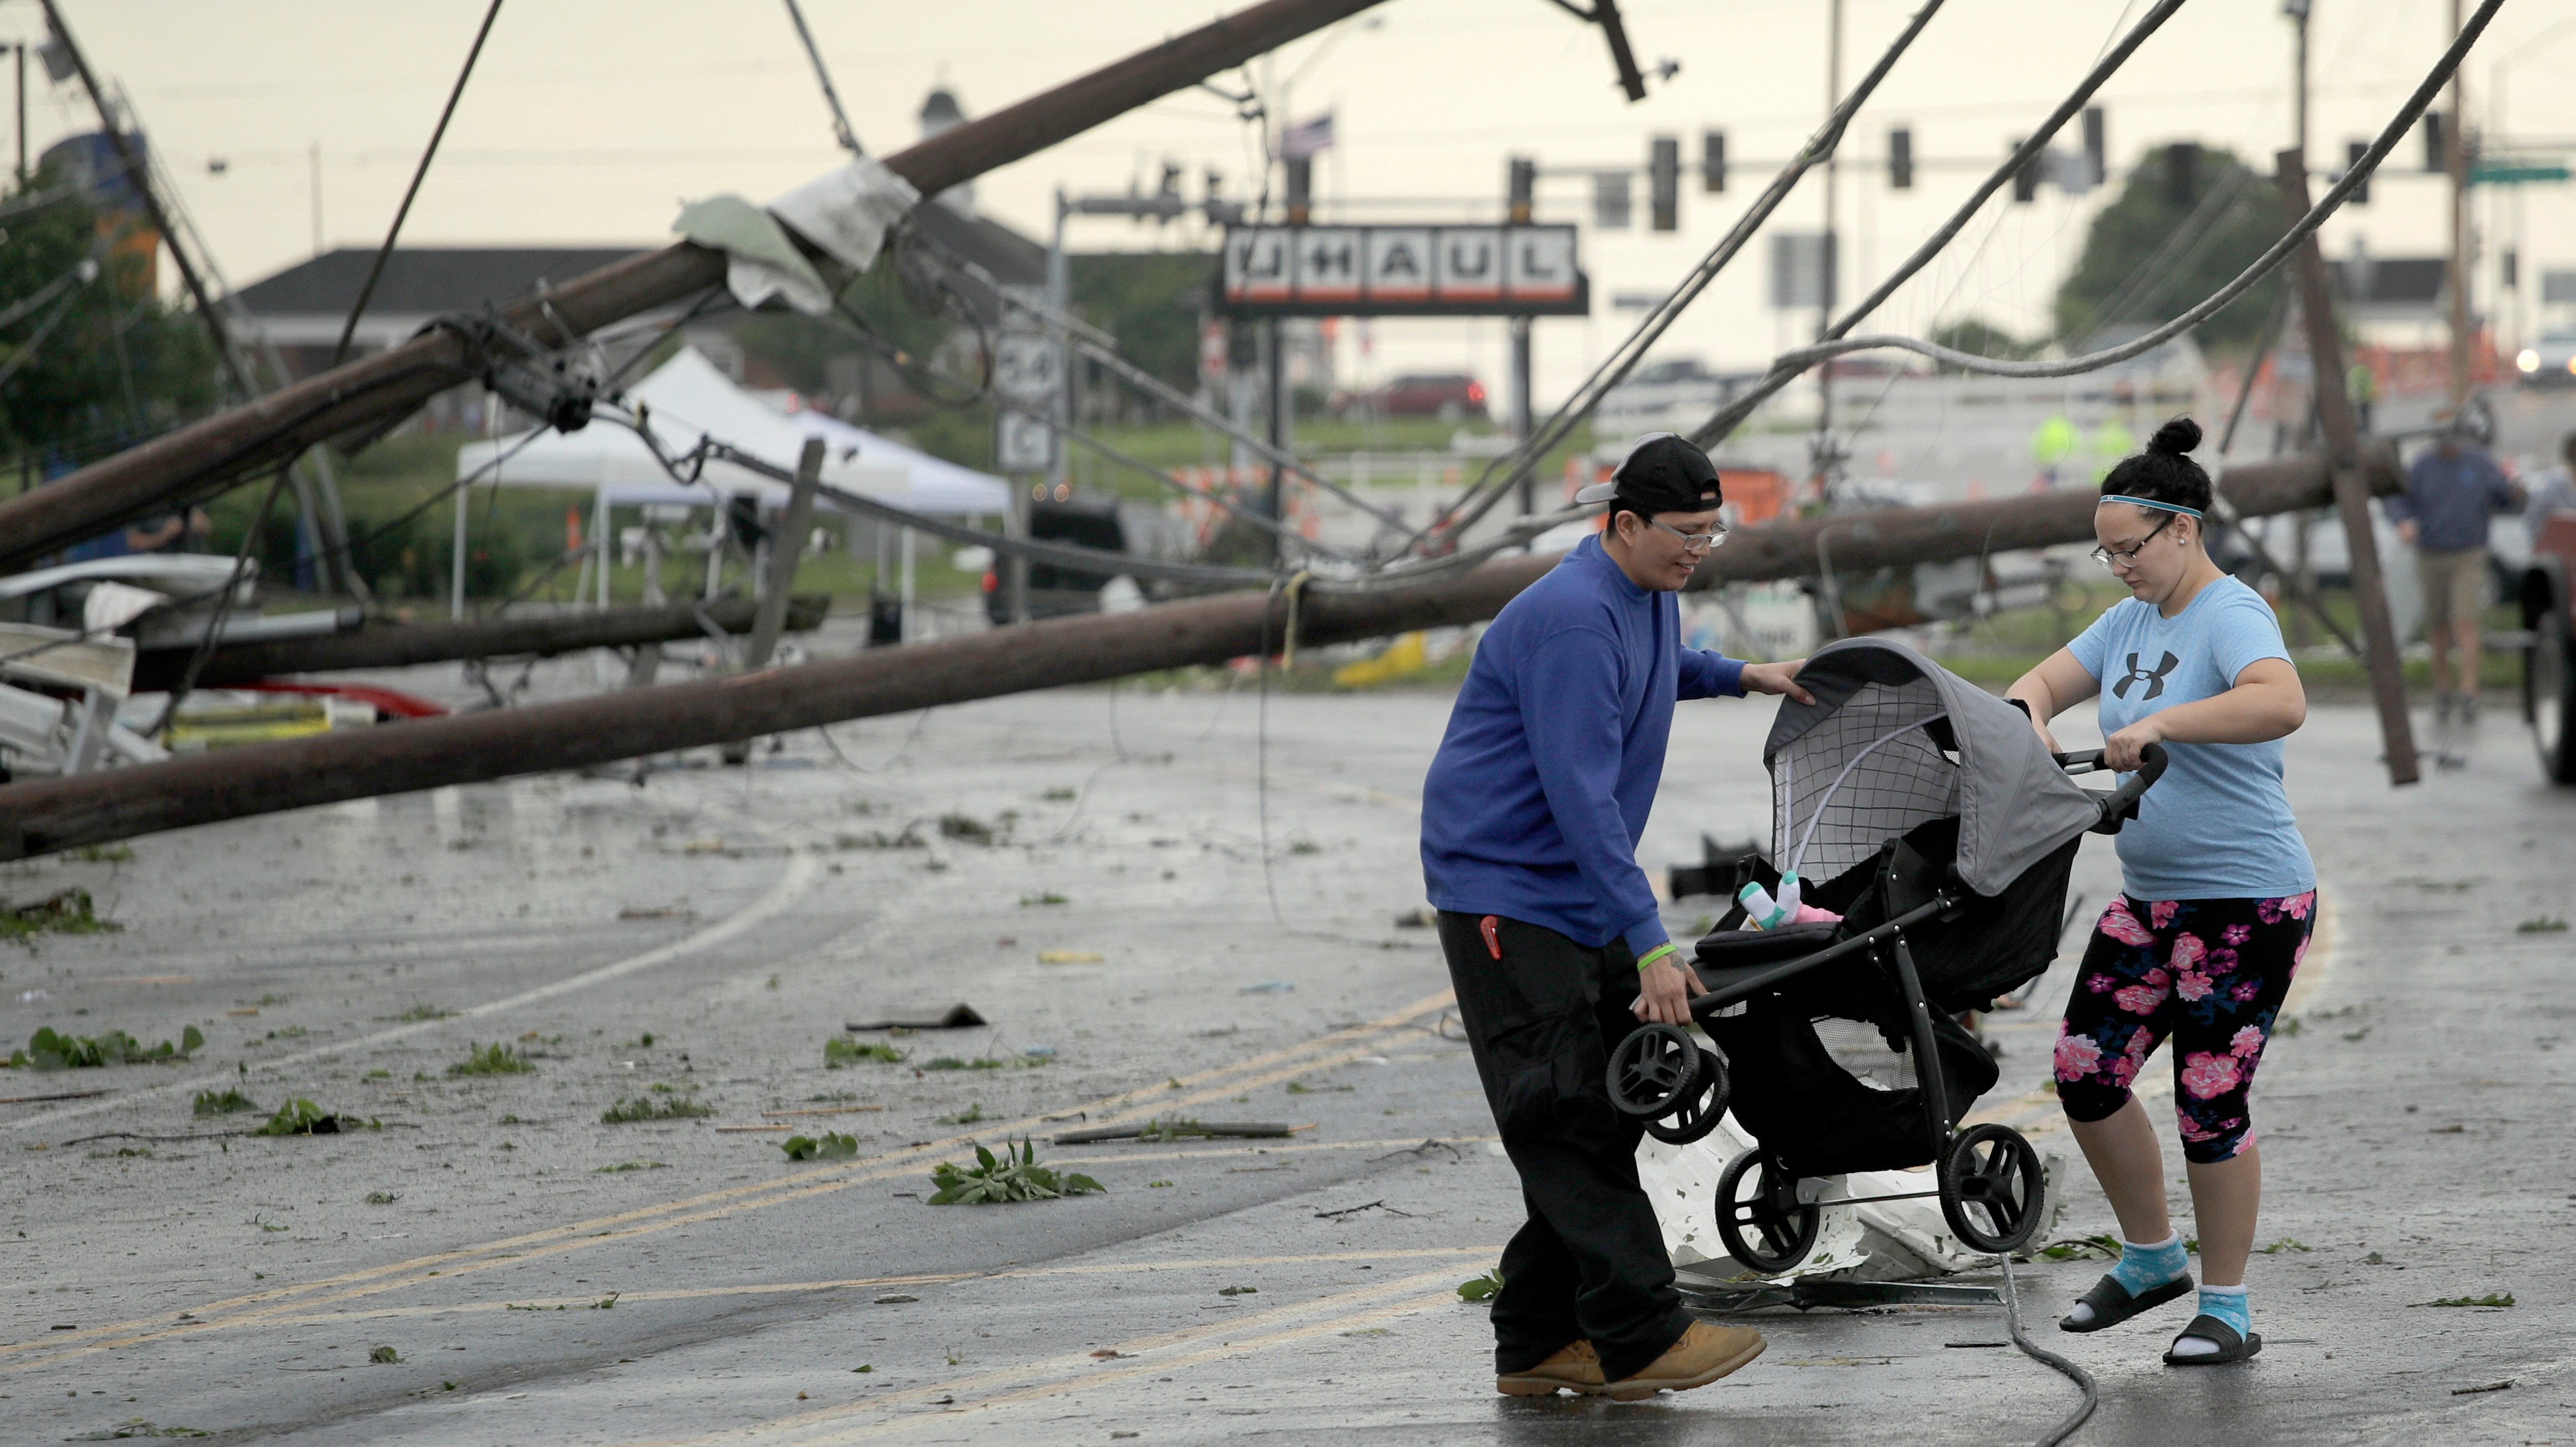 """A """"Wedge"""" Tornado In Missouri Tore Buildings Apart: """"We Used To Have A Balcony"""""""